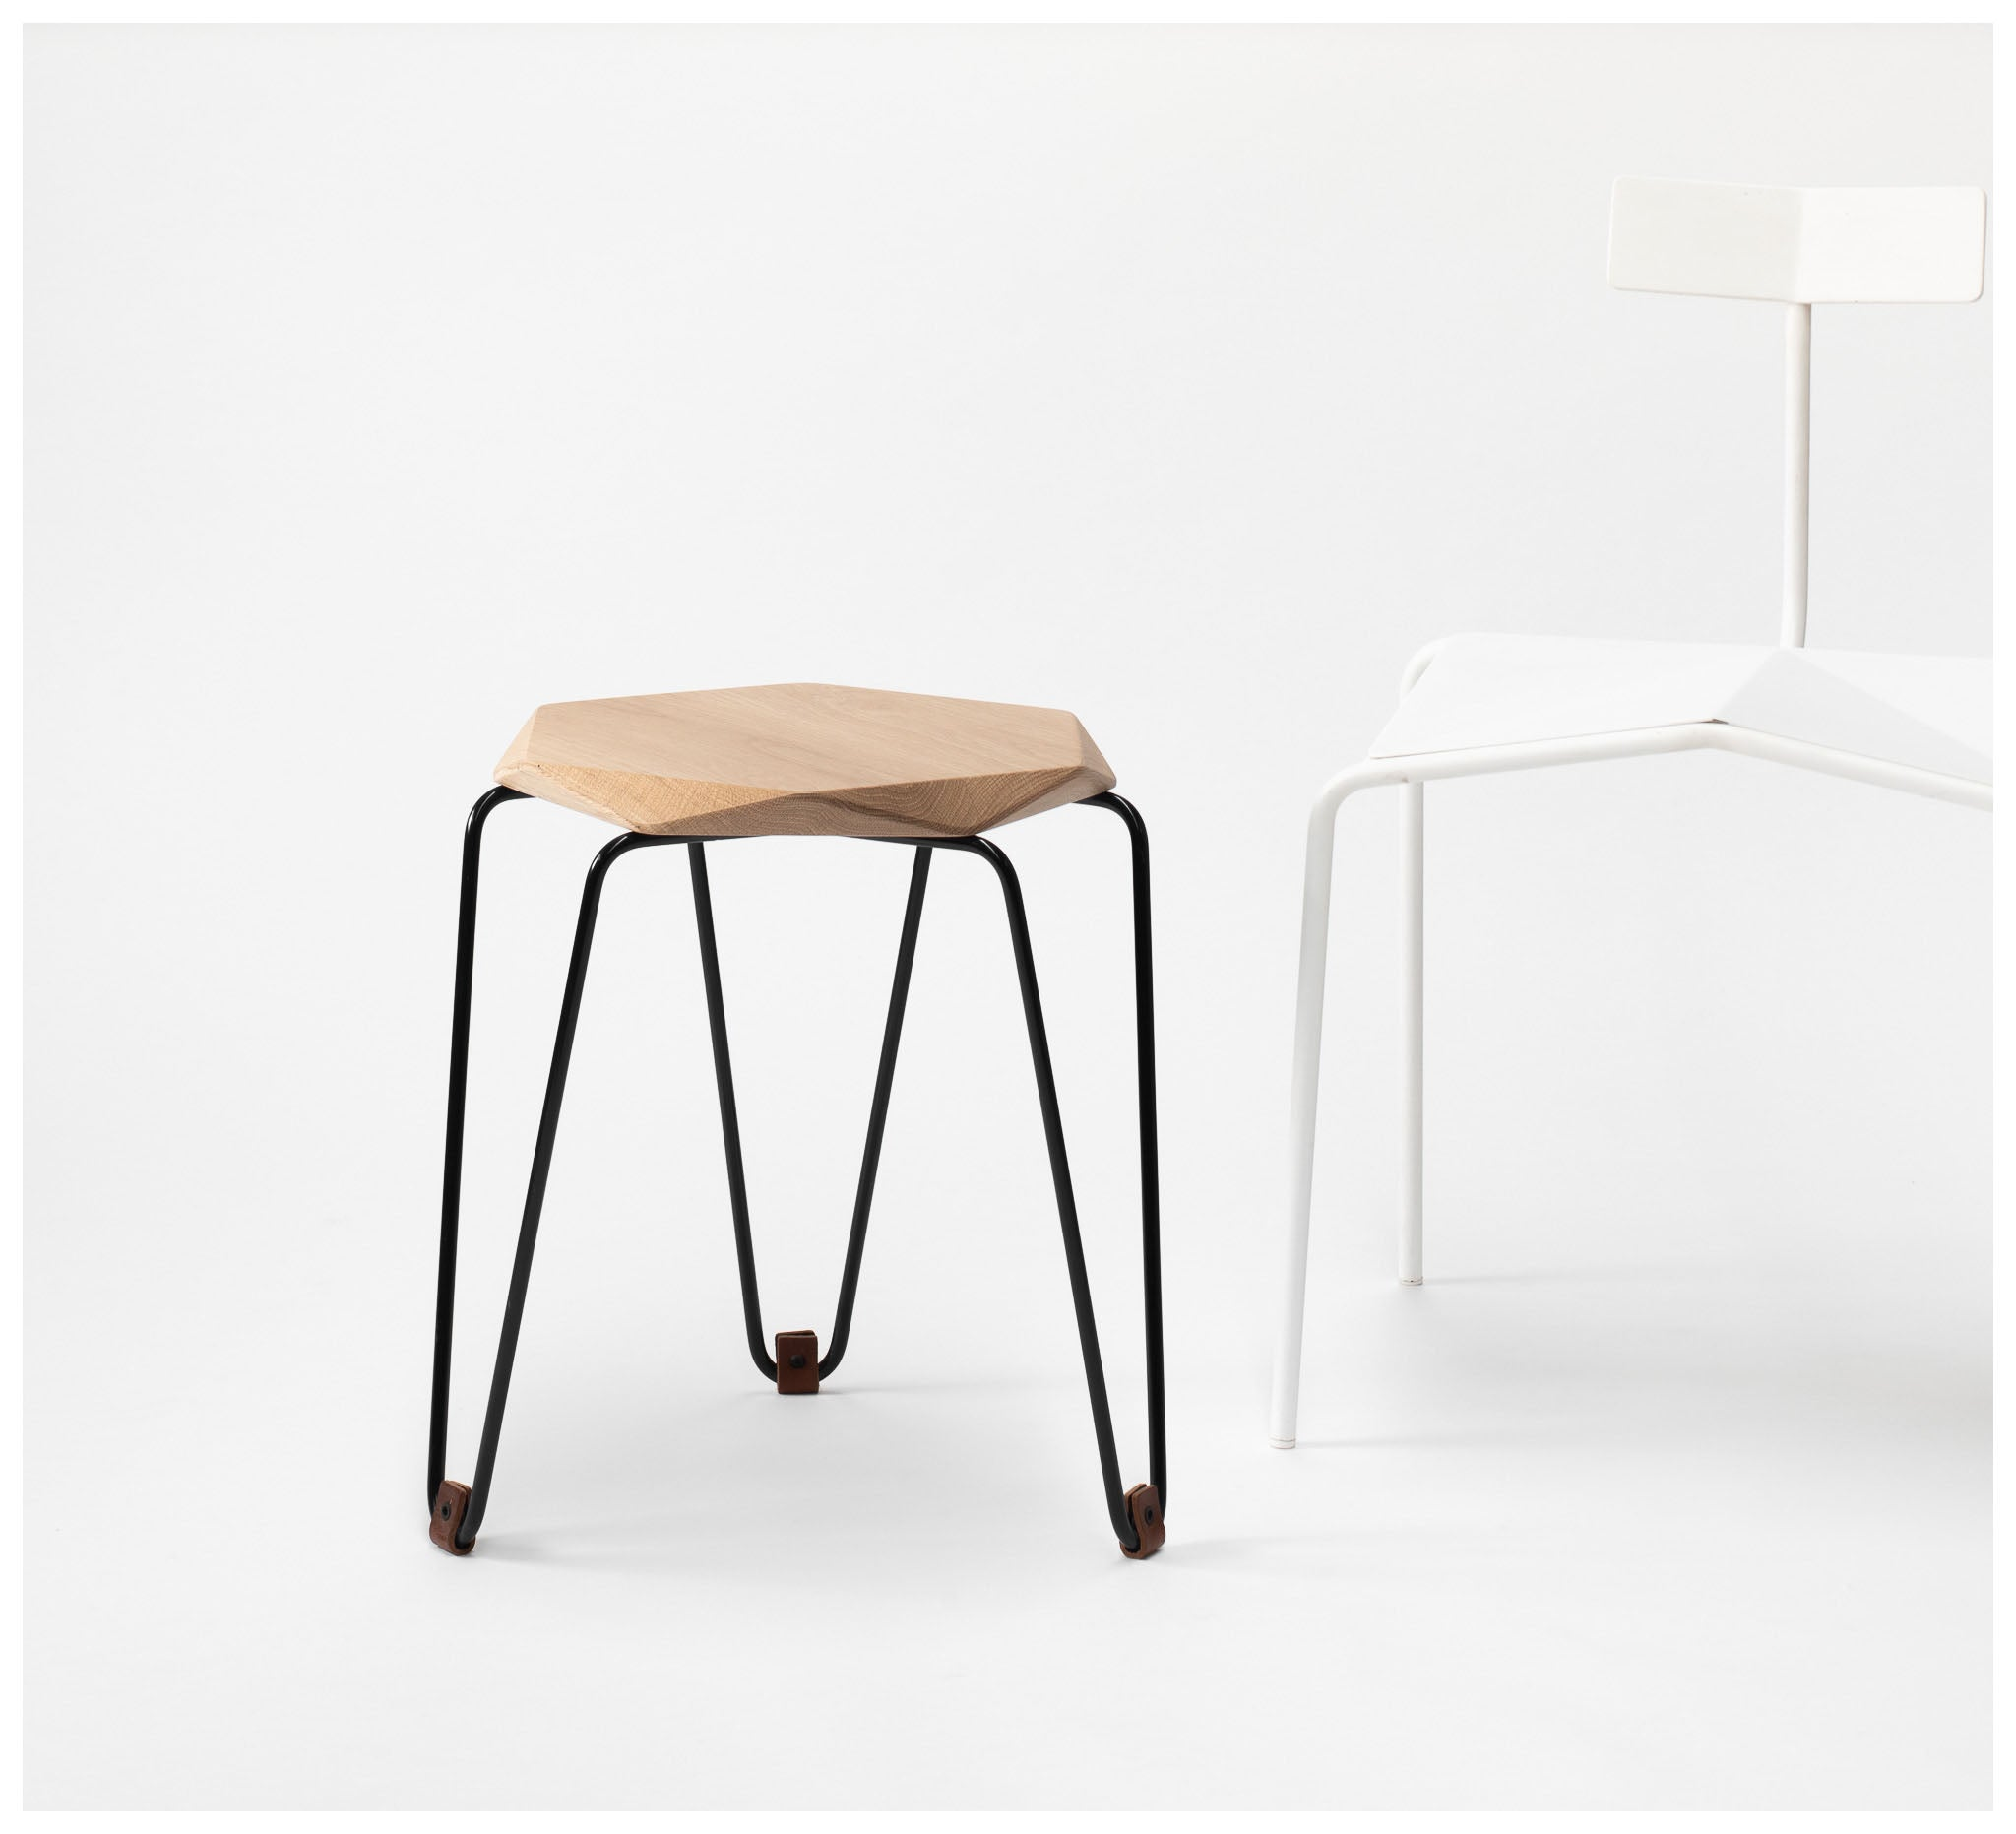 Tuckbox Design - Klein Gem Stool - Matte Black Mild Steel and Timber